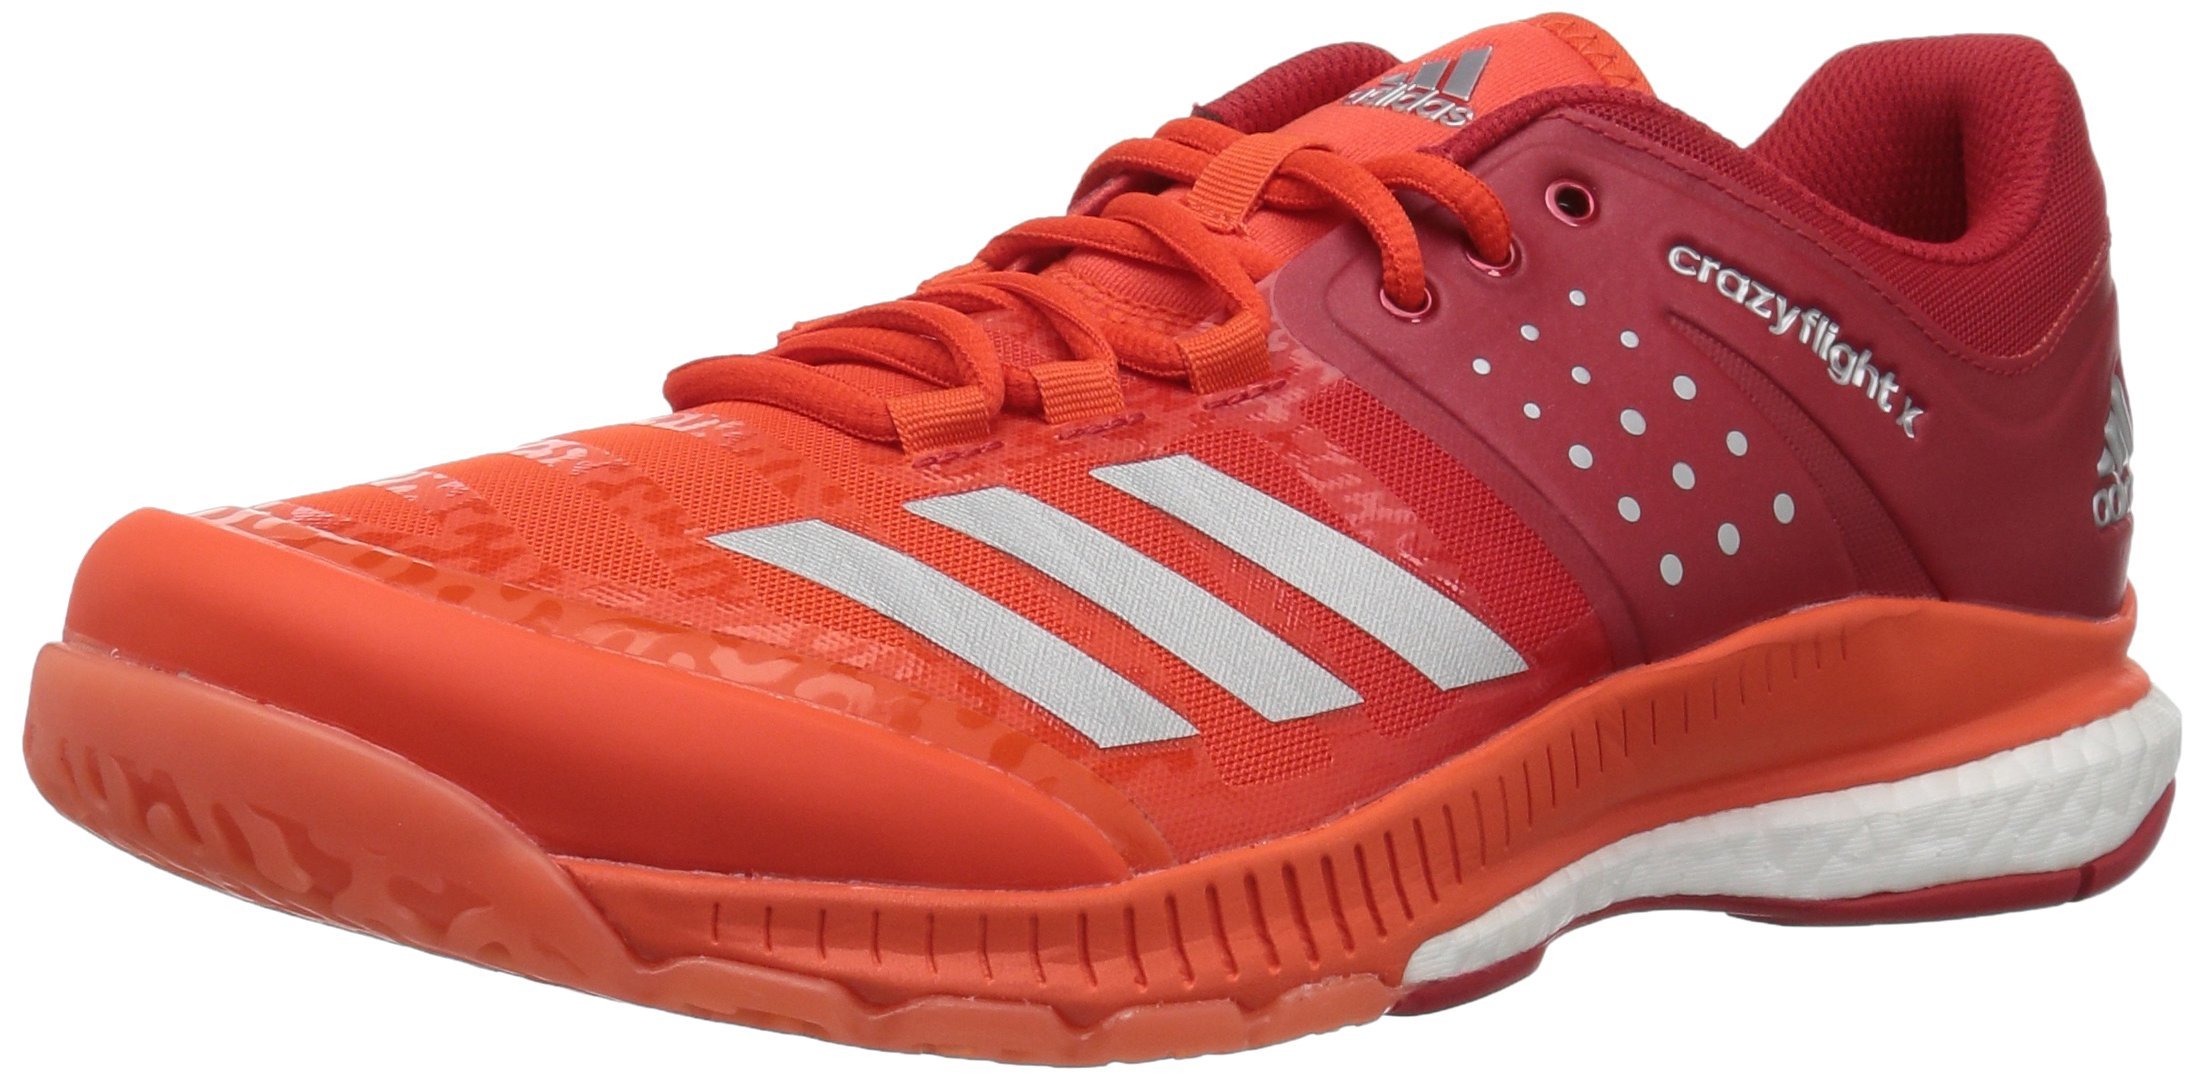 adidas Men's Crazyflight X Volleyball Shoes, Scarlet/Metallic Silver/Energy, (11 M US) by adidas